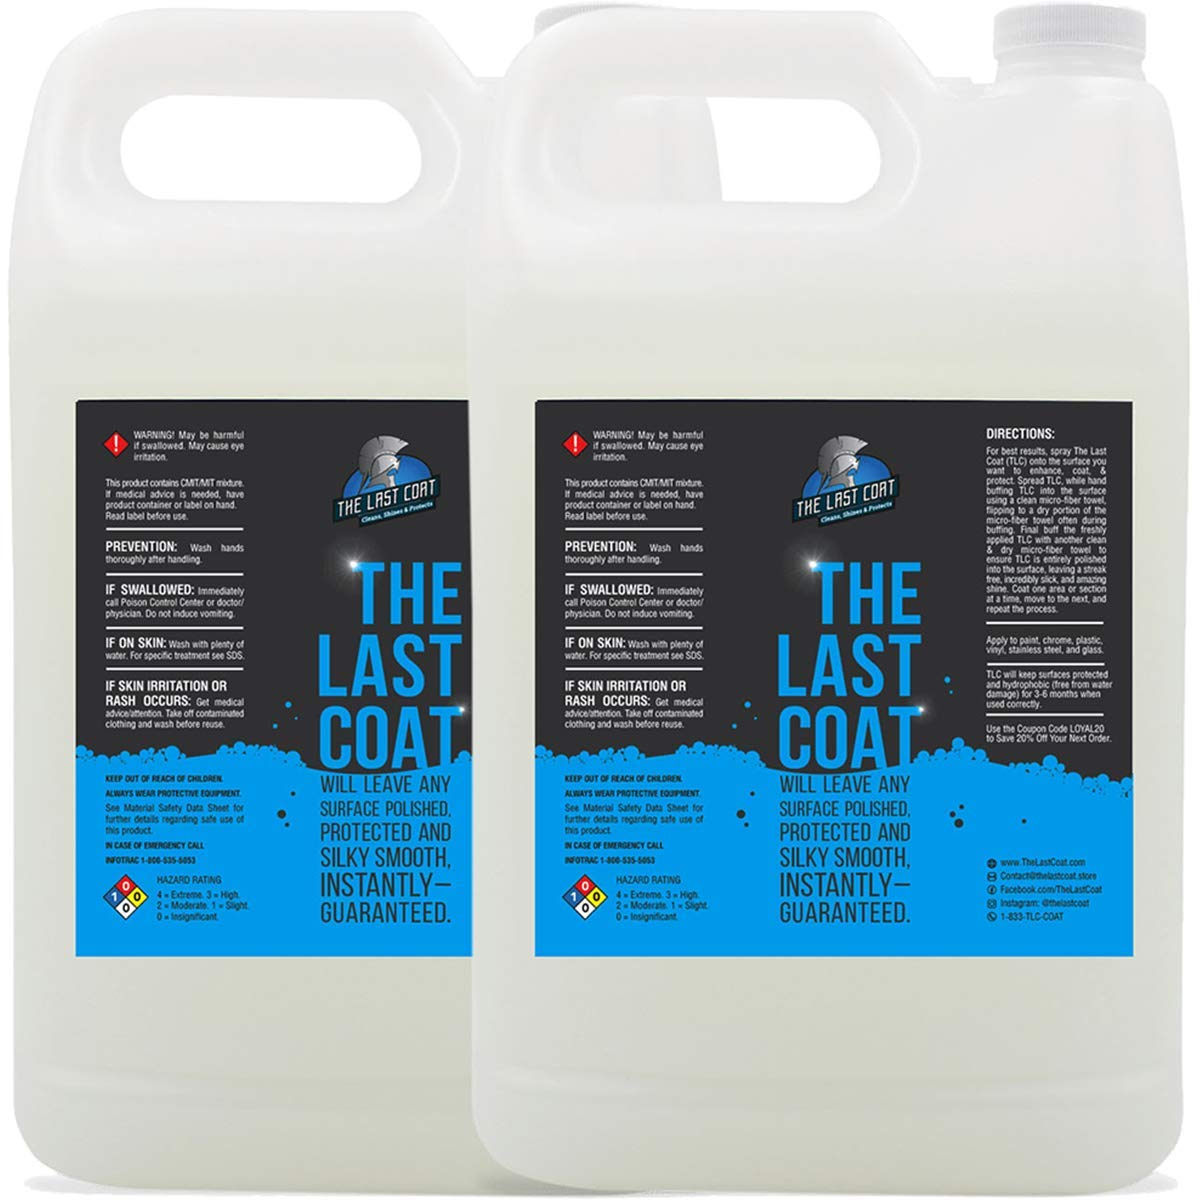 The Last Coat Car Polish - Water Based Liquid Coating Protection, Smooth & Shiny Finish - Paint Care & Repair for Car or Any Surface by The Last Coat (Image #1)